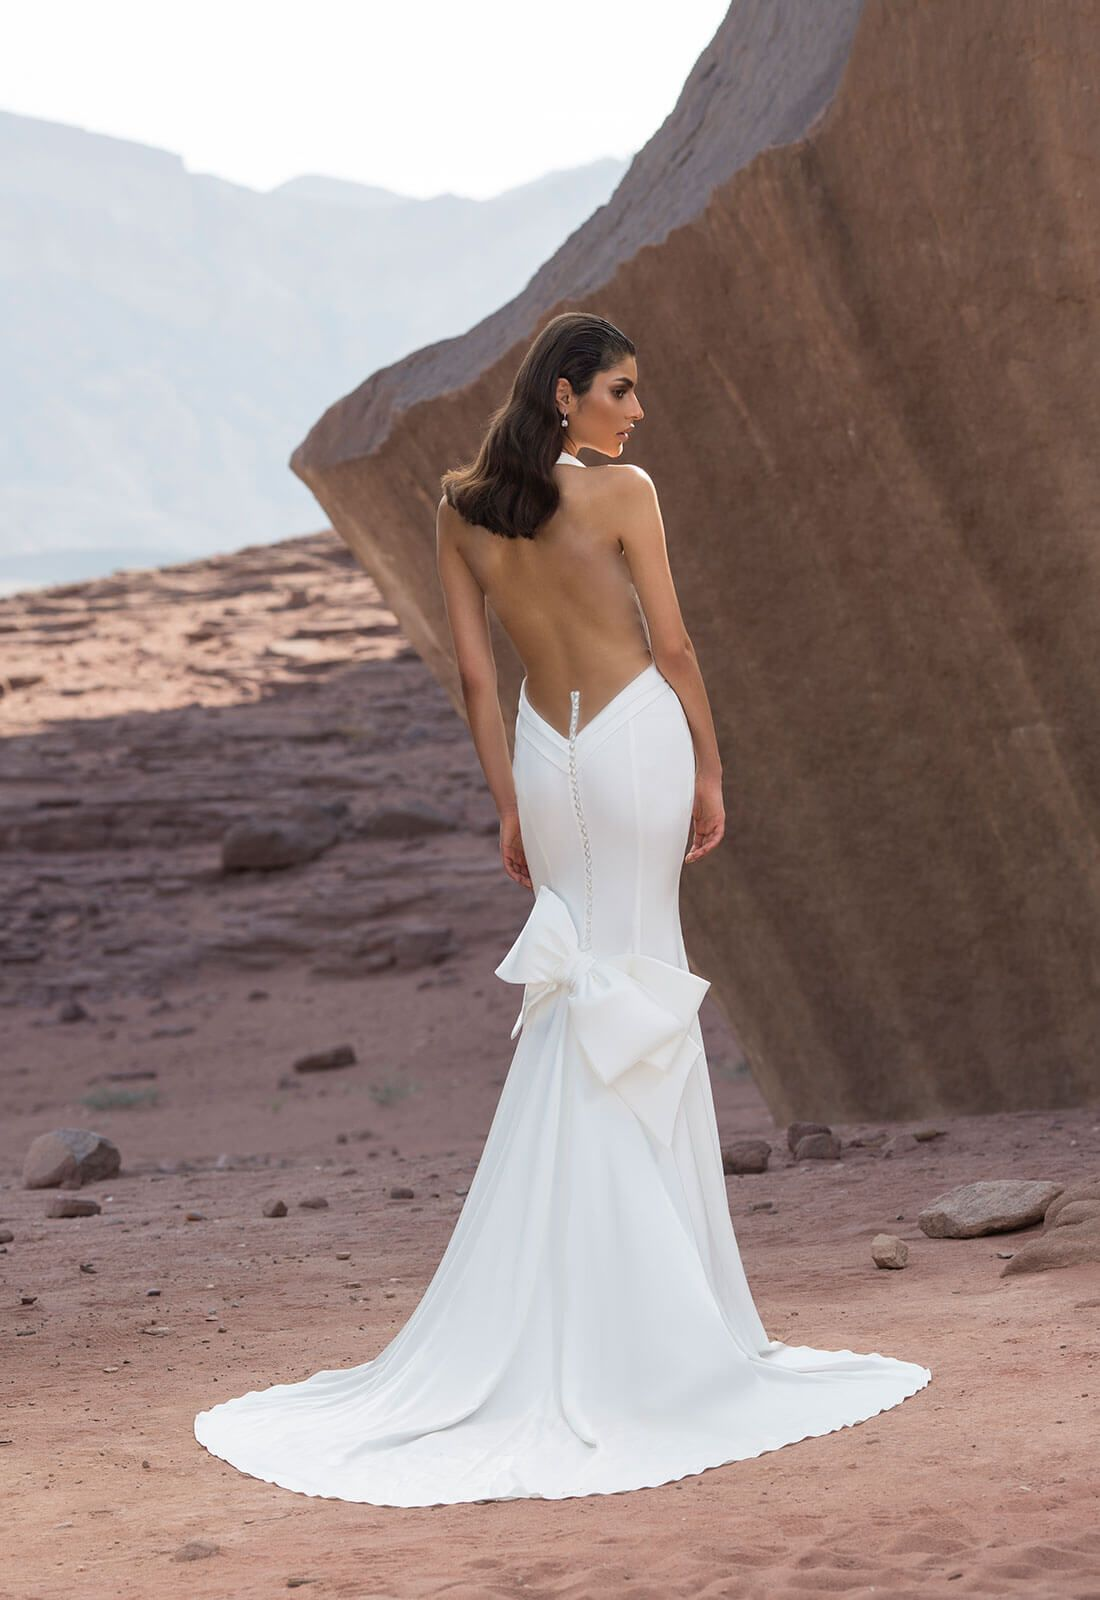 Previously owned wedding dresses  Style no   Dream Wedding  Pinterest  Pnina tornai and Wedding